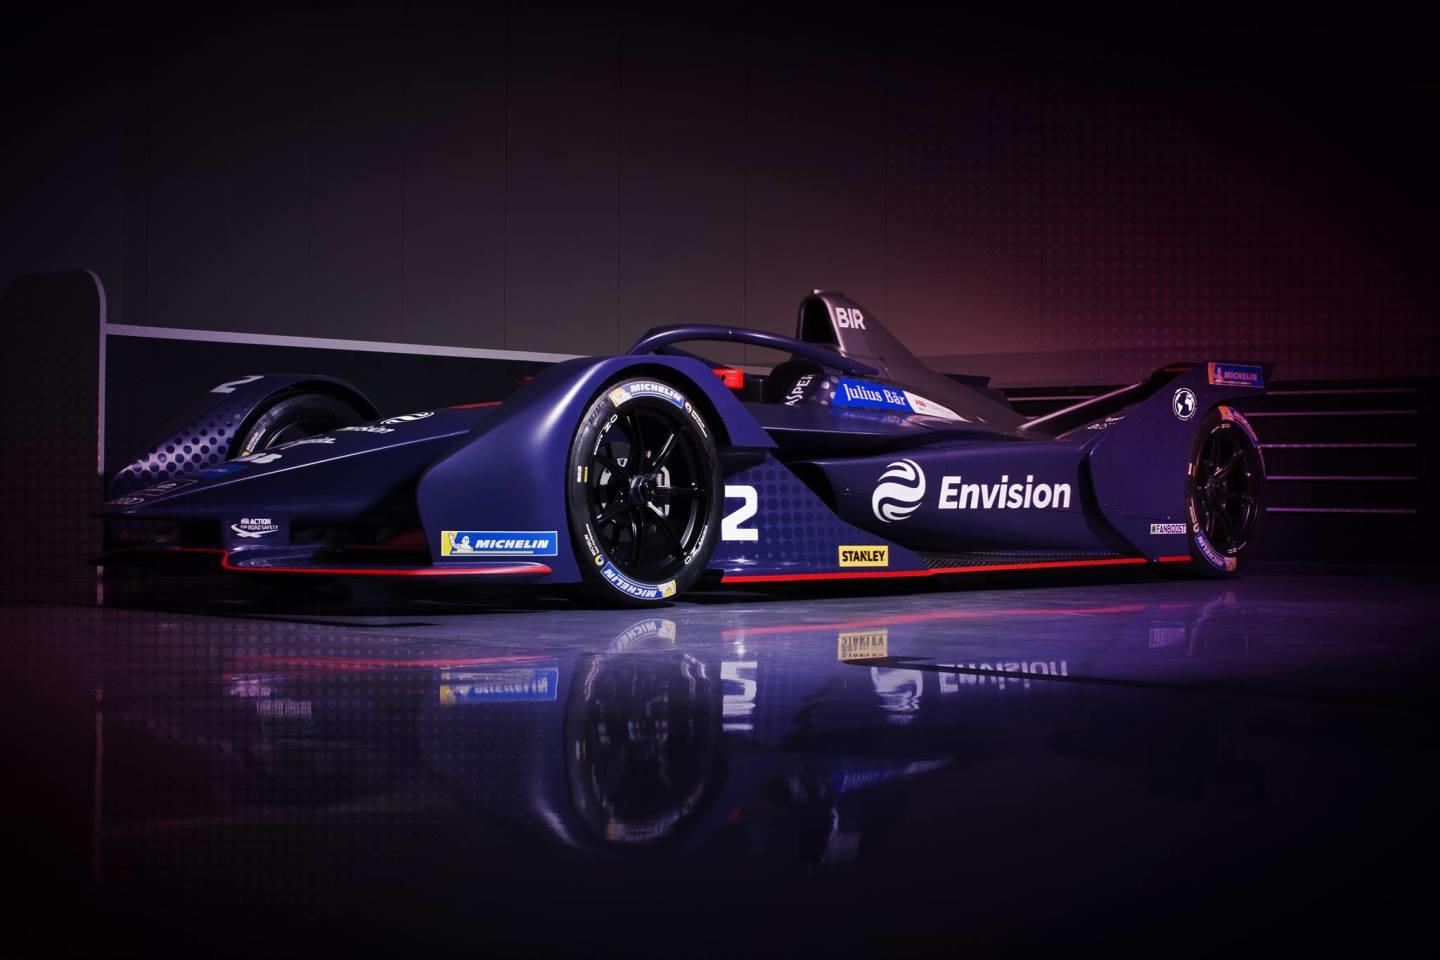 envision_virgin_racing_formula_e_2018-19